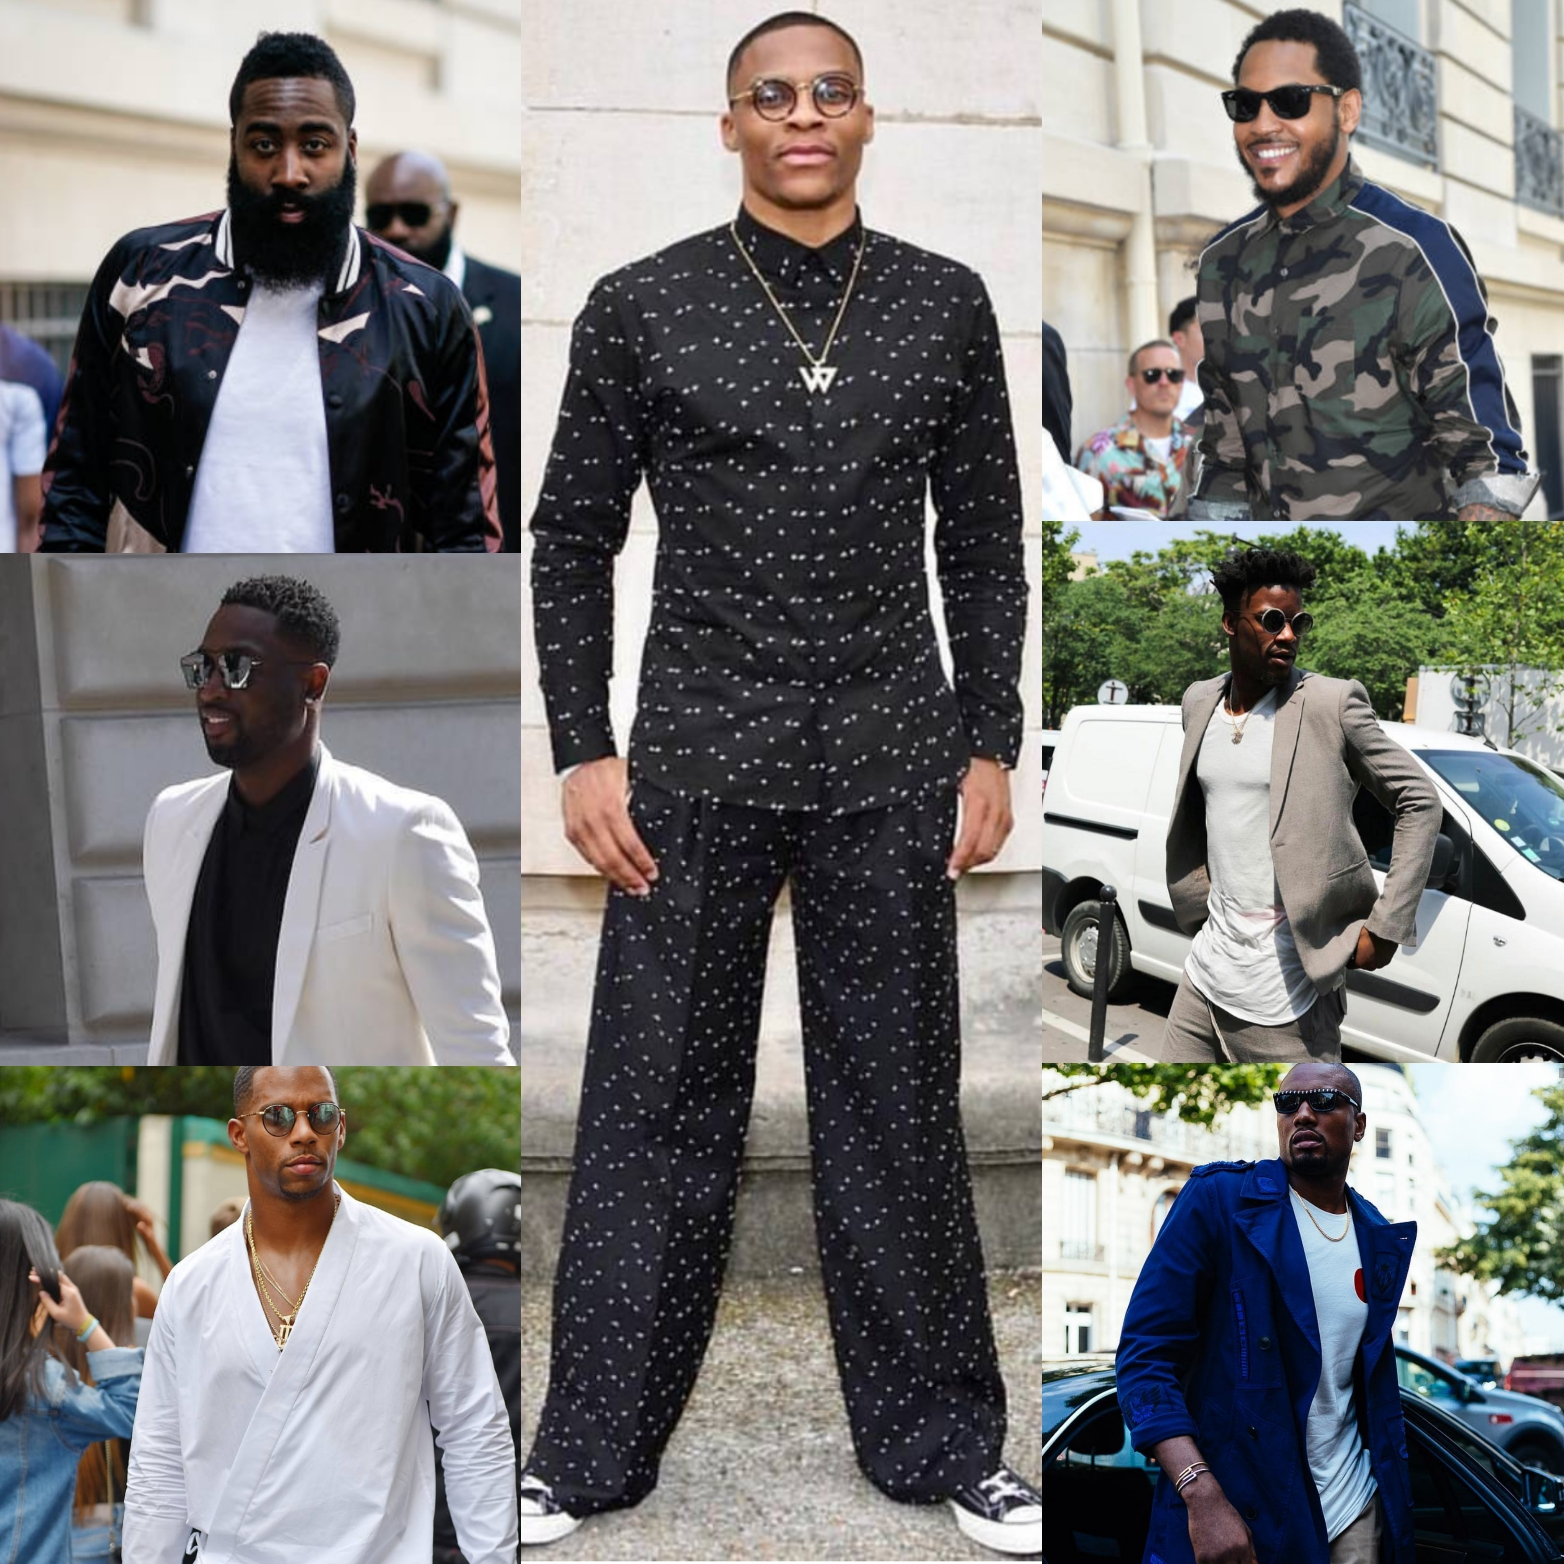 Russell Westbrook, Dwyane Wade, James Harden & More Attend Paris Fashion Week 2017